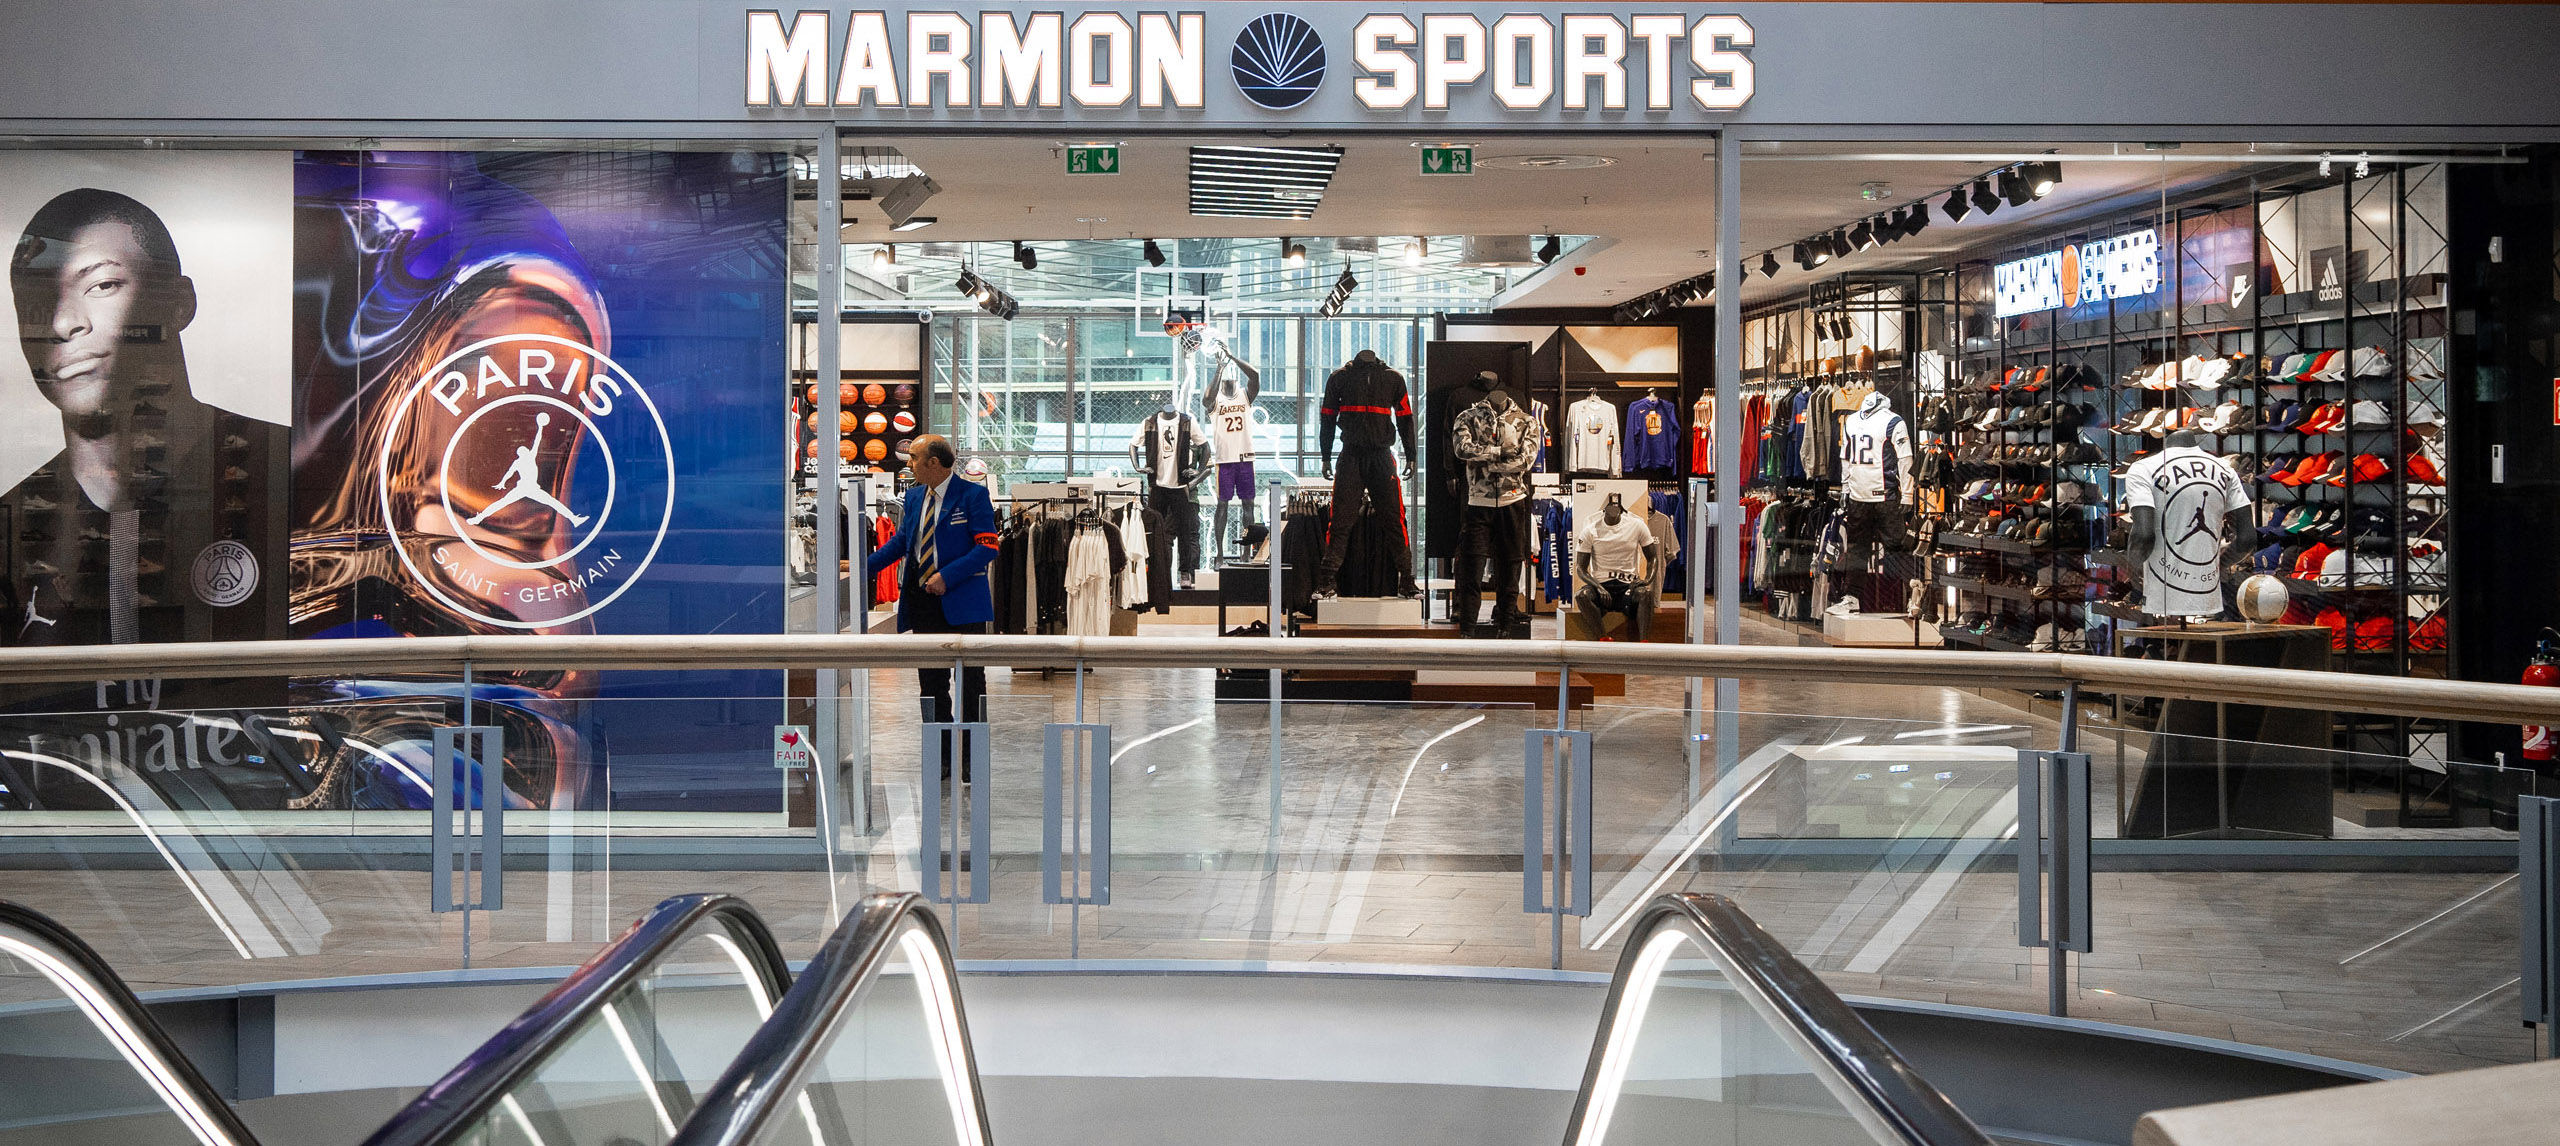 Photo magasin Marmon Sports Le Millénaire Aubervillier